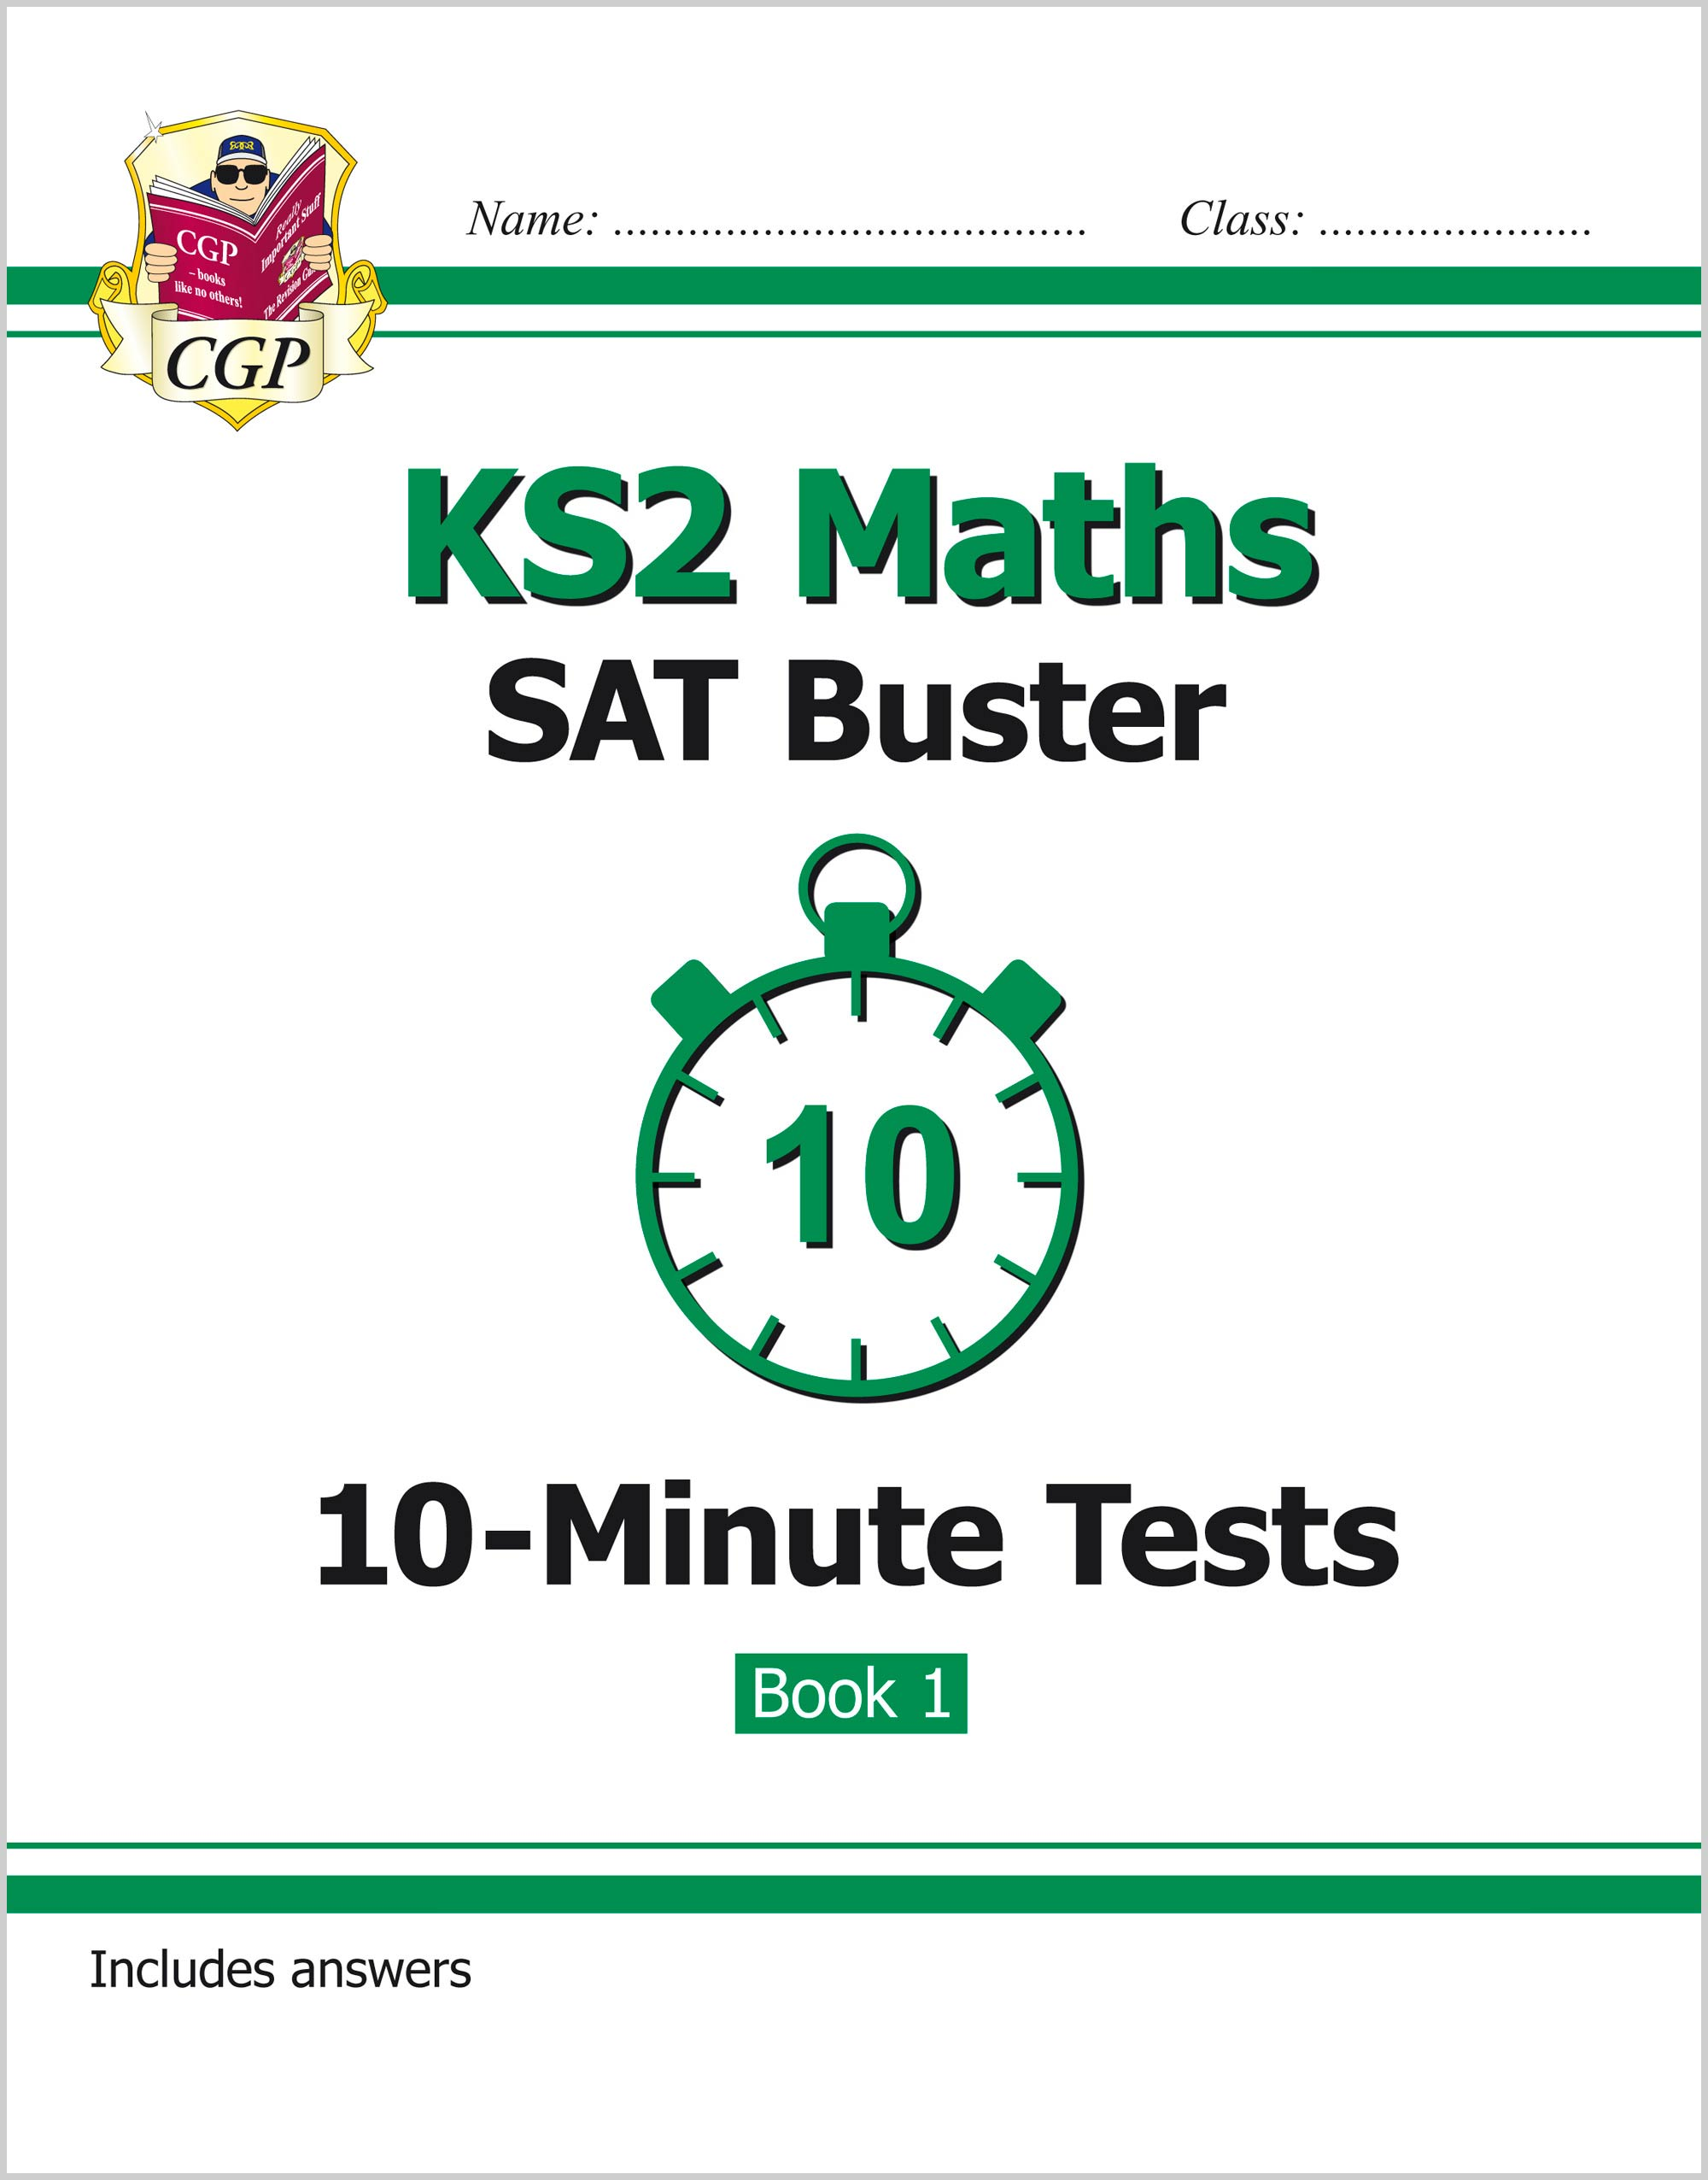 MXP22 - KS2 Maths SAT Buster: 10-Minute Tests Maths - Book 1 (for the 2019 tests)